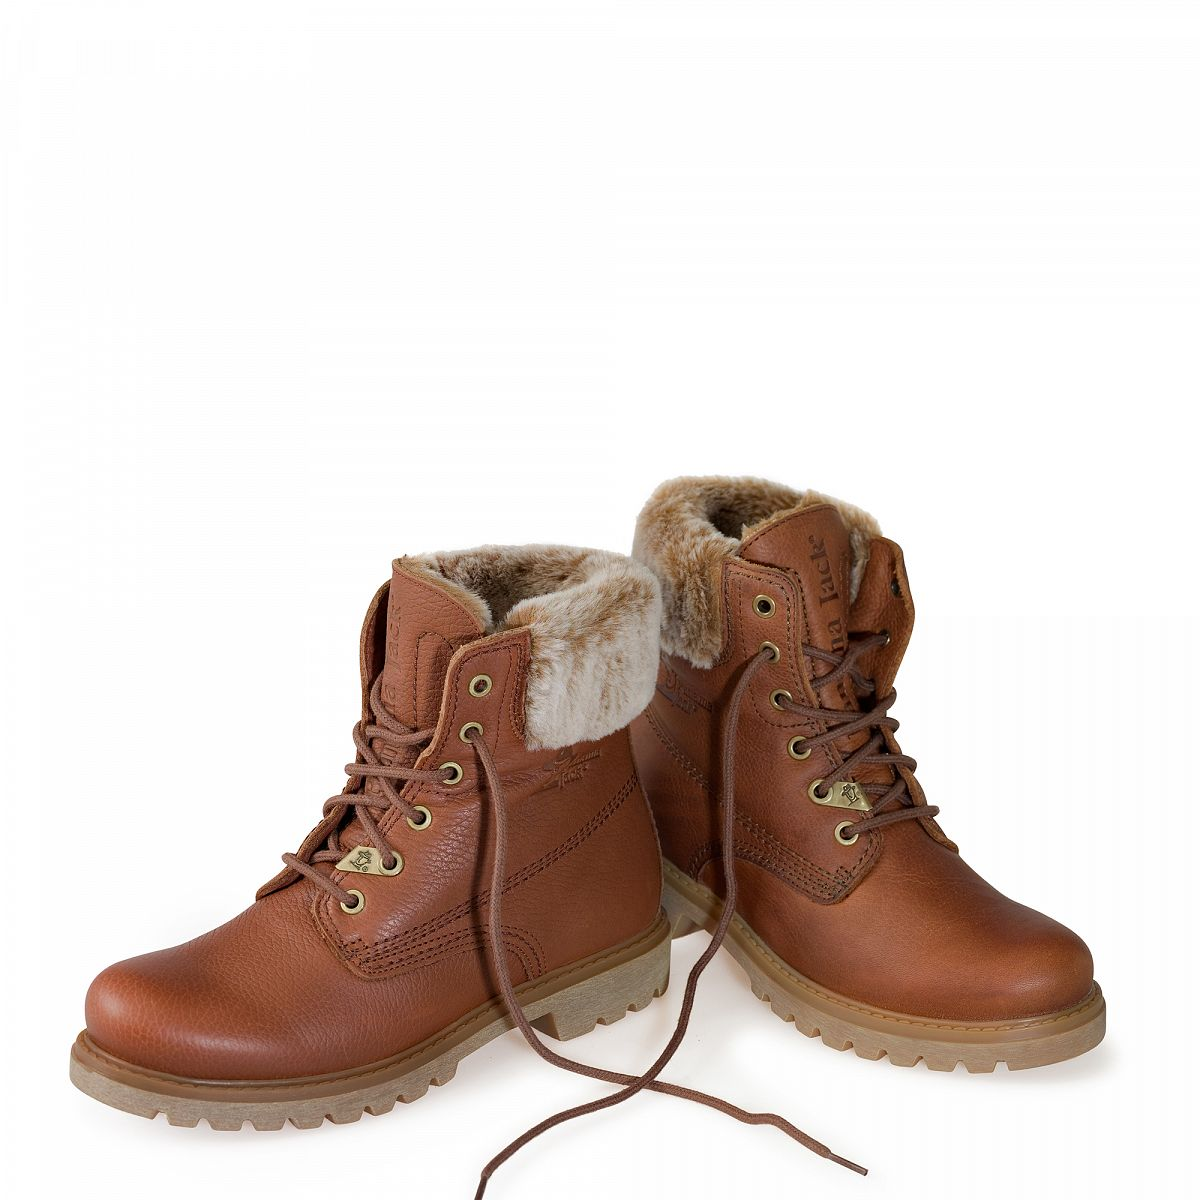 Leather boots in bark with leather inner lining 34a8300632b